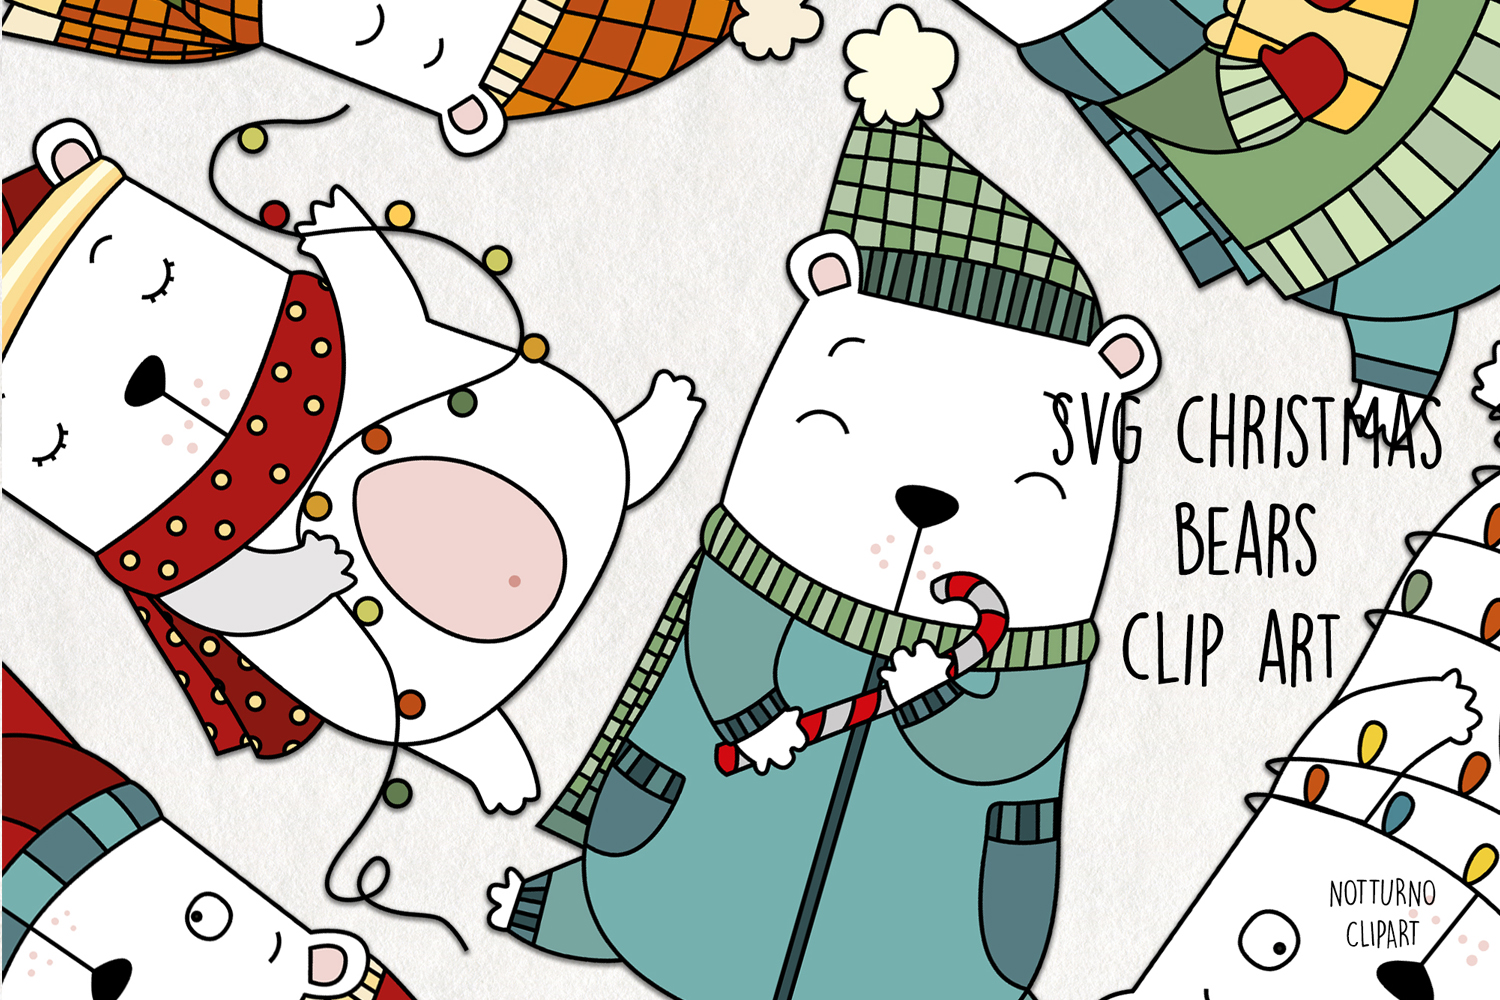 Download Free Christmas Bear Clipart Graphic By Notturnoclipart Creative Fabrica for Cricut Explore, Silhouette and other cutting machines.